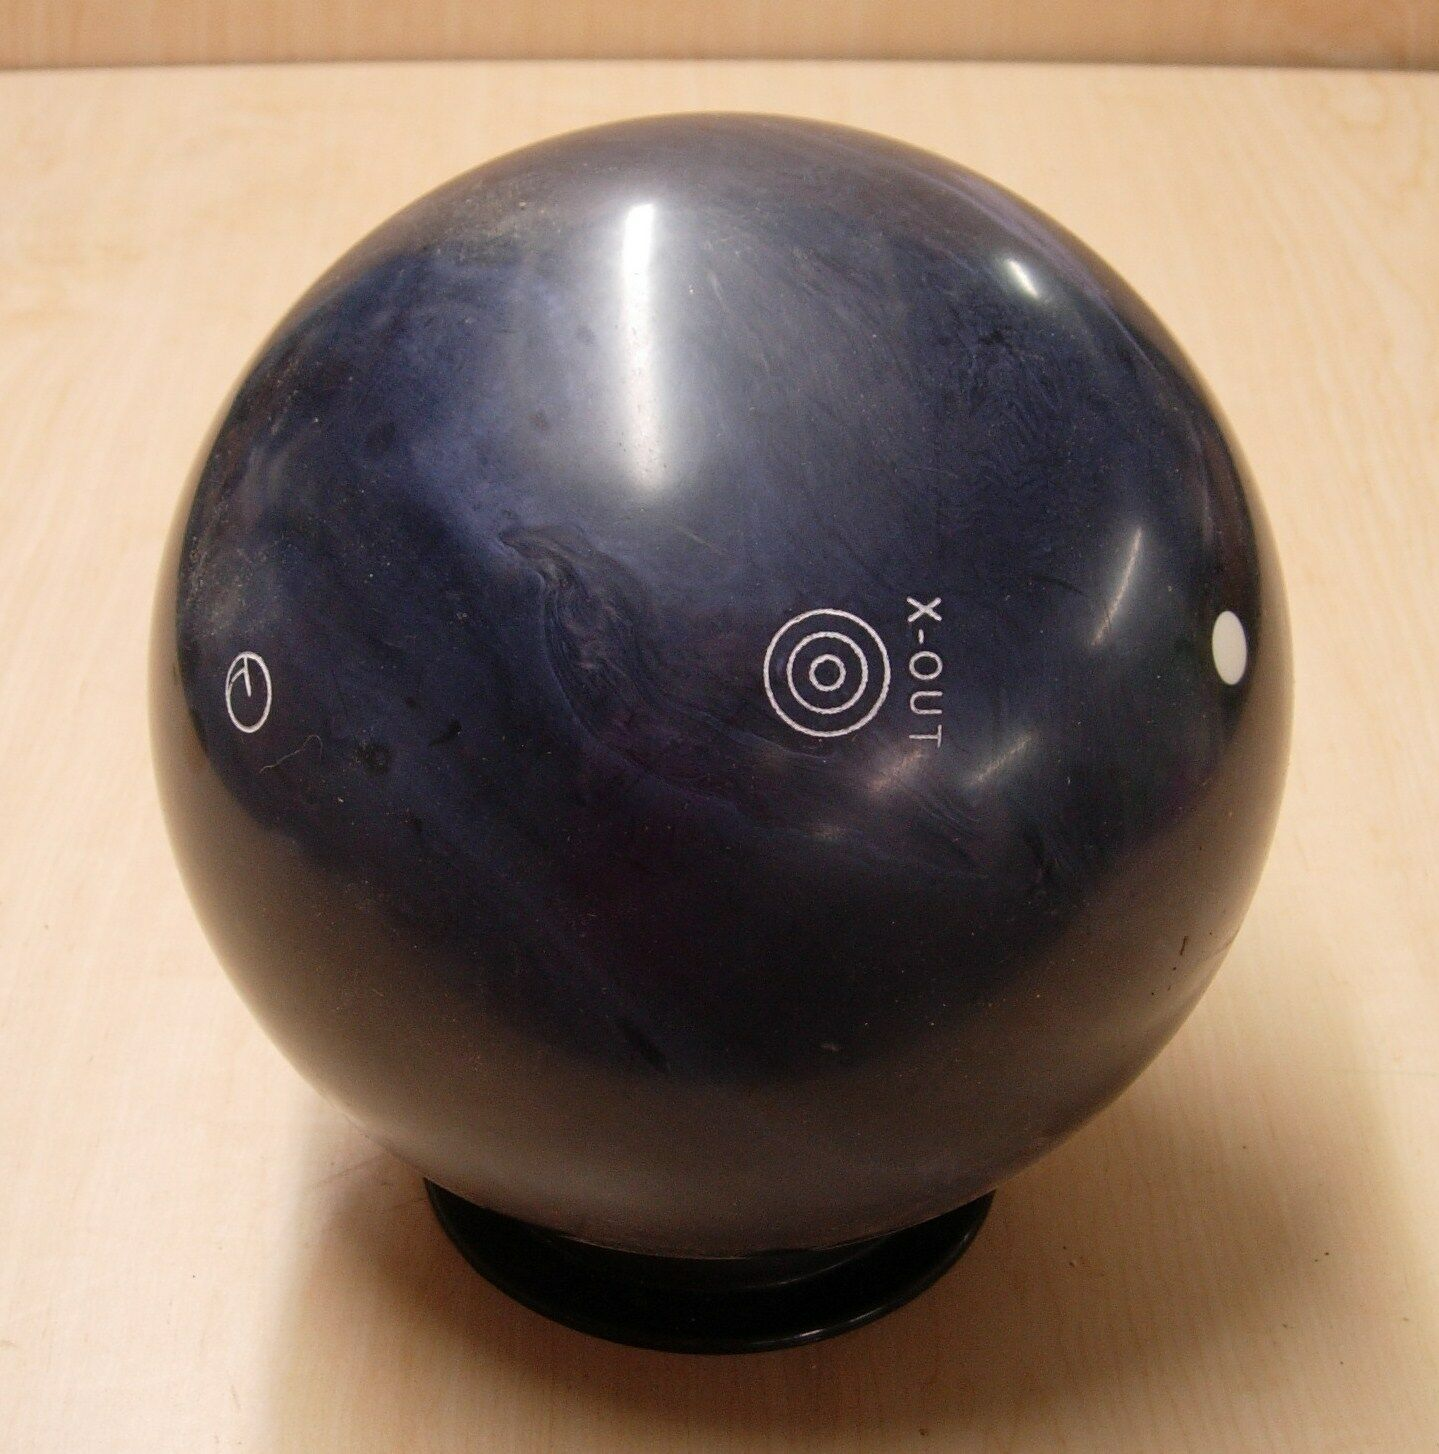 =14oz TW 1-3 4 NIB New In Box Undrilled 2011 Ebonite Mission Domination X-Out